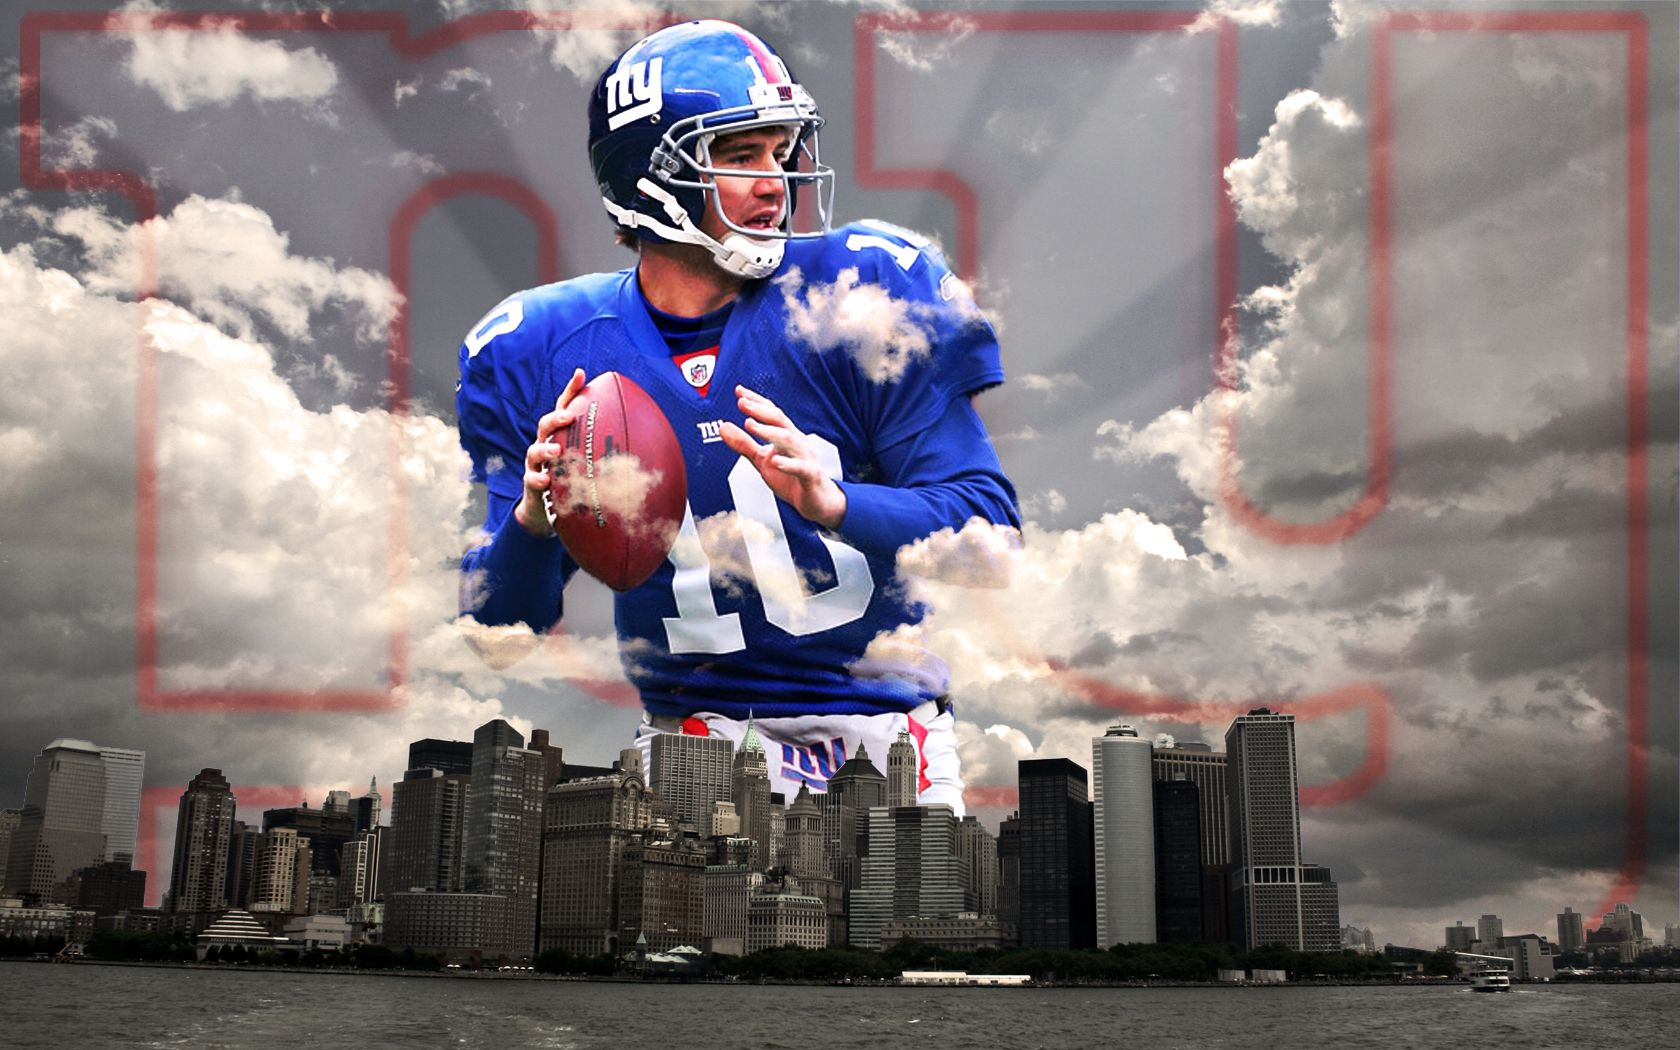 New York Giants Wallpaper Collection Sports Geekery Subno